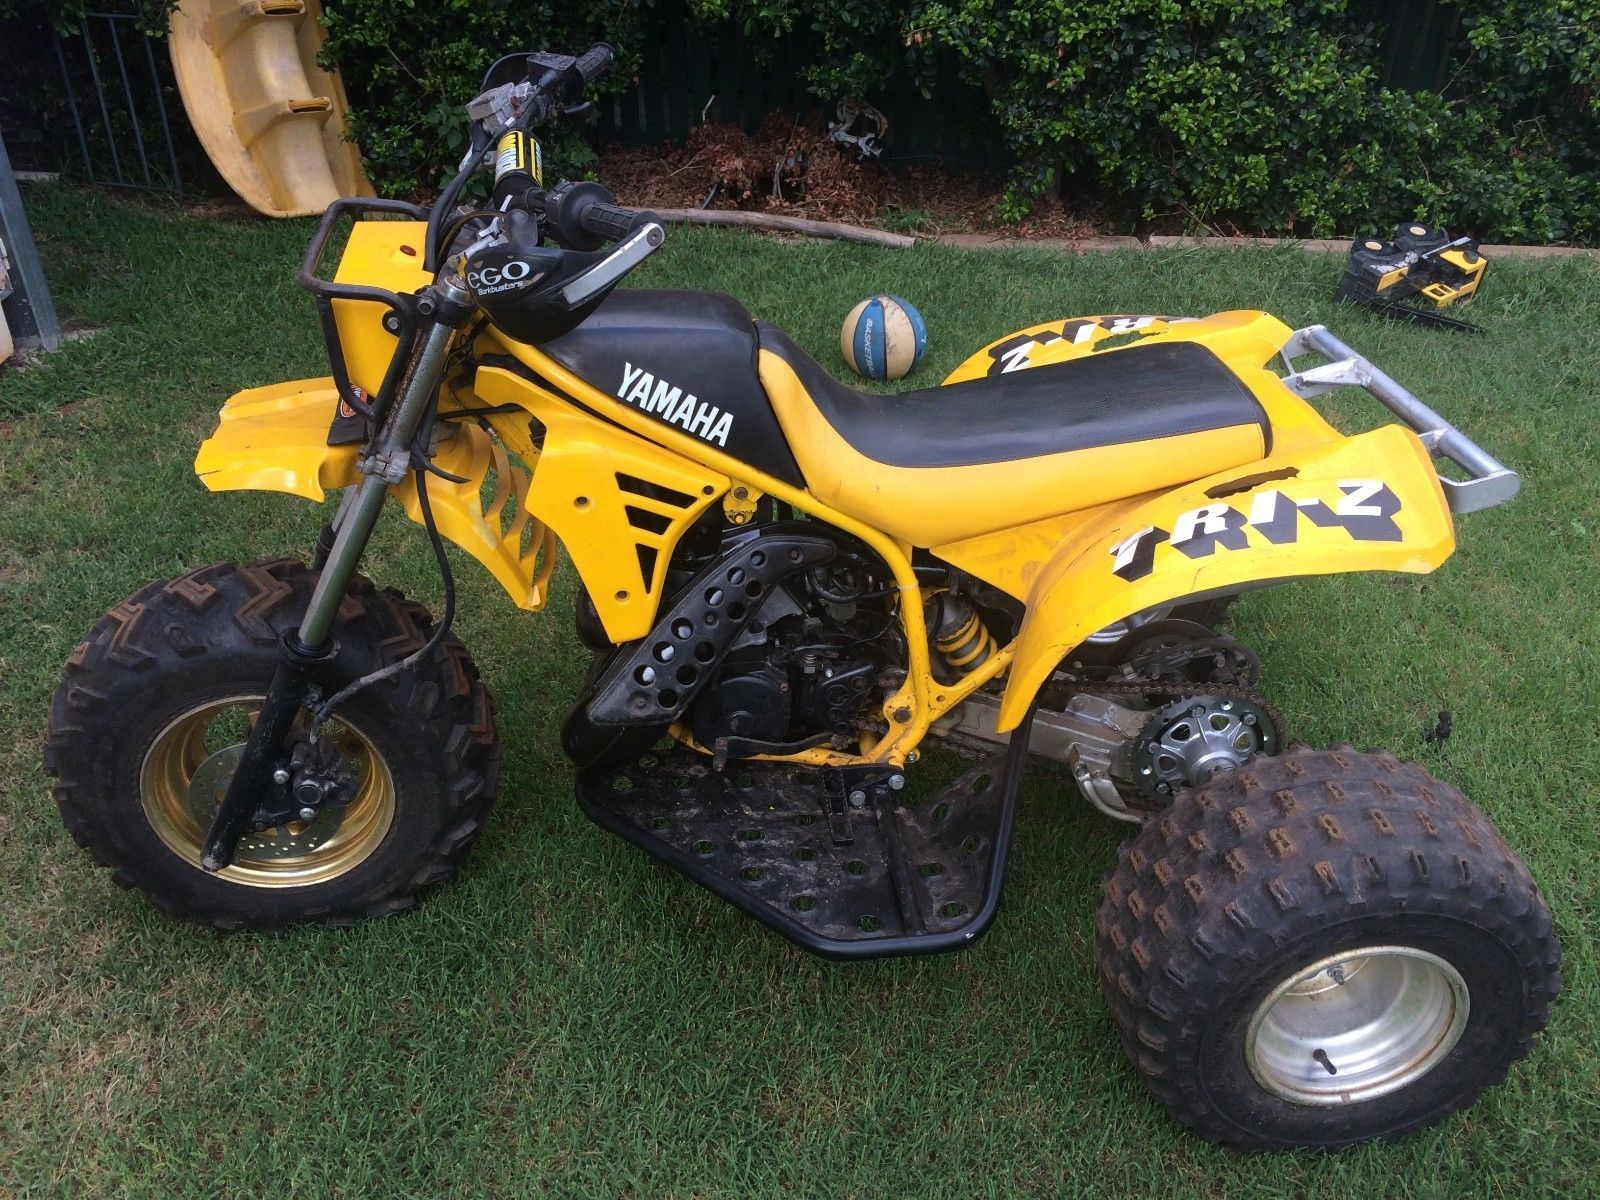 Yamaha tri-z 250 | eBay Yamaha, Buy Motorcycle, Ebay, Motorcycles For